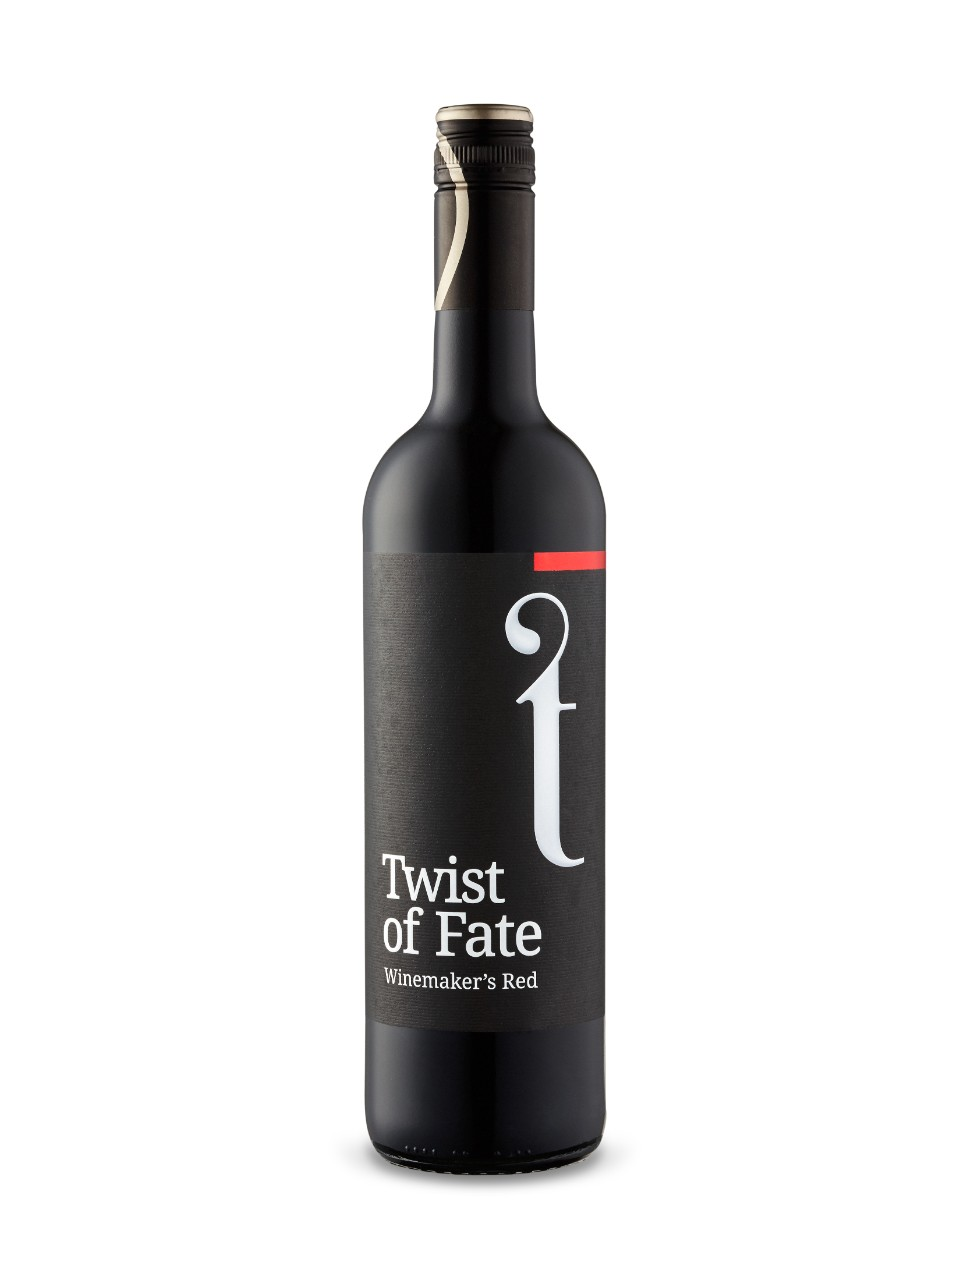 Winemaker's Red Twist of Fate